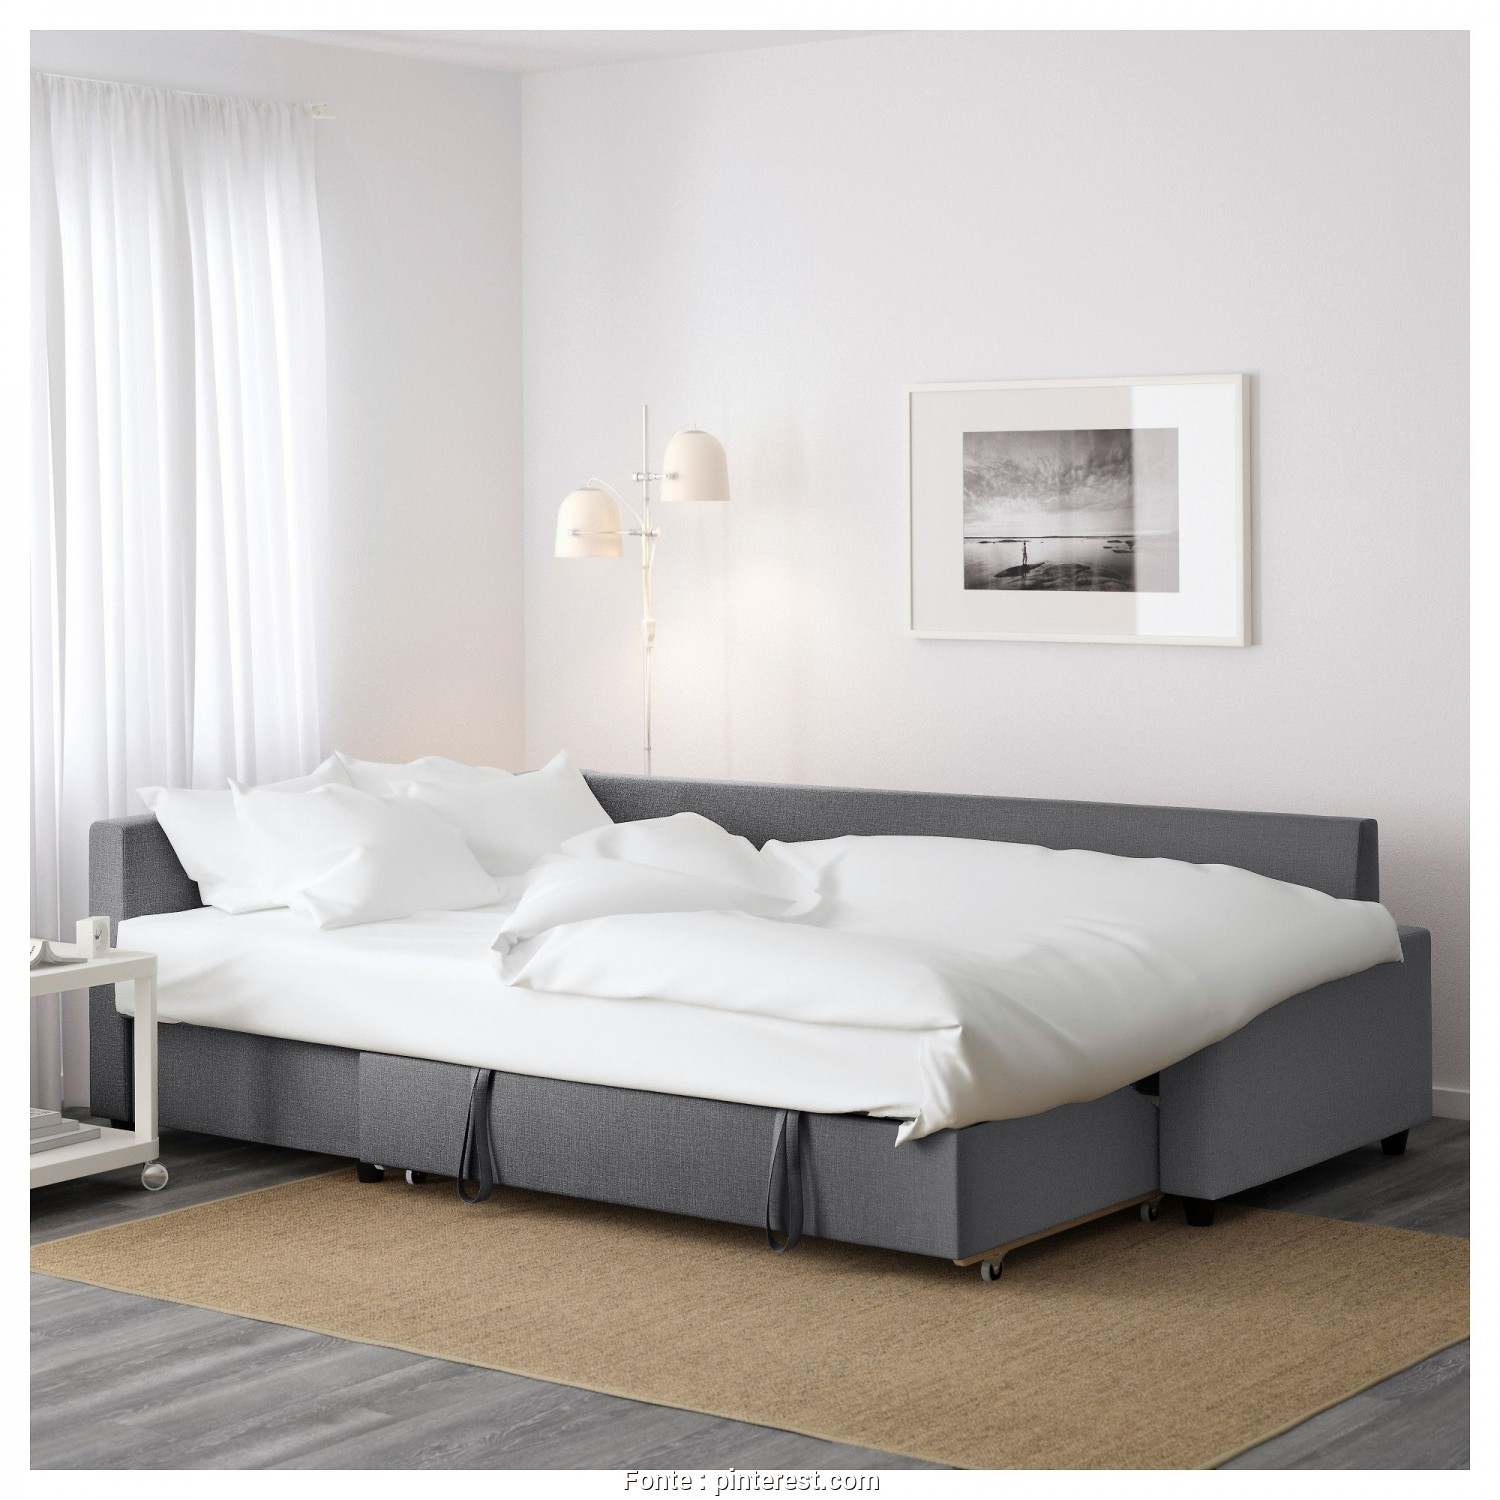 Vilasund Ikea France, Favoloso 15 Ikea Products That Do EXTRA, Small Spaces,, Rec Room